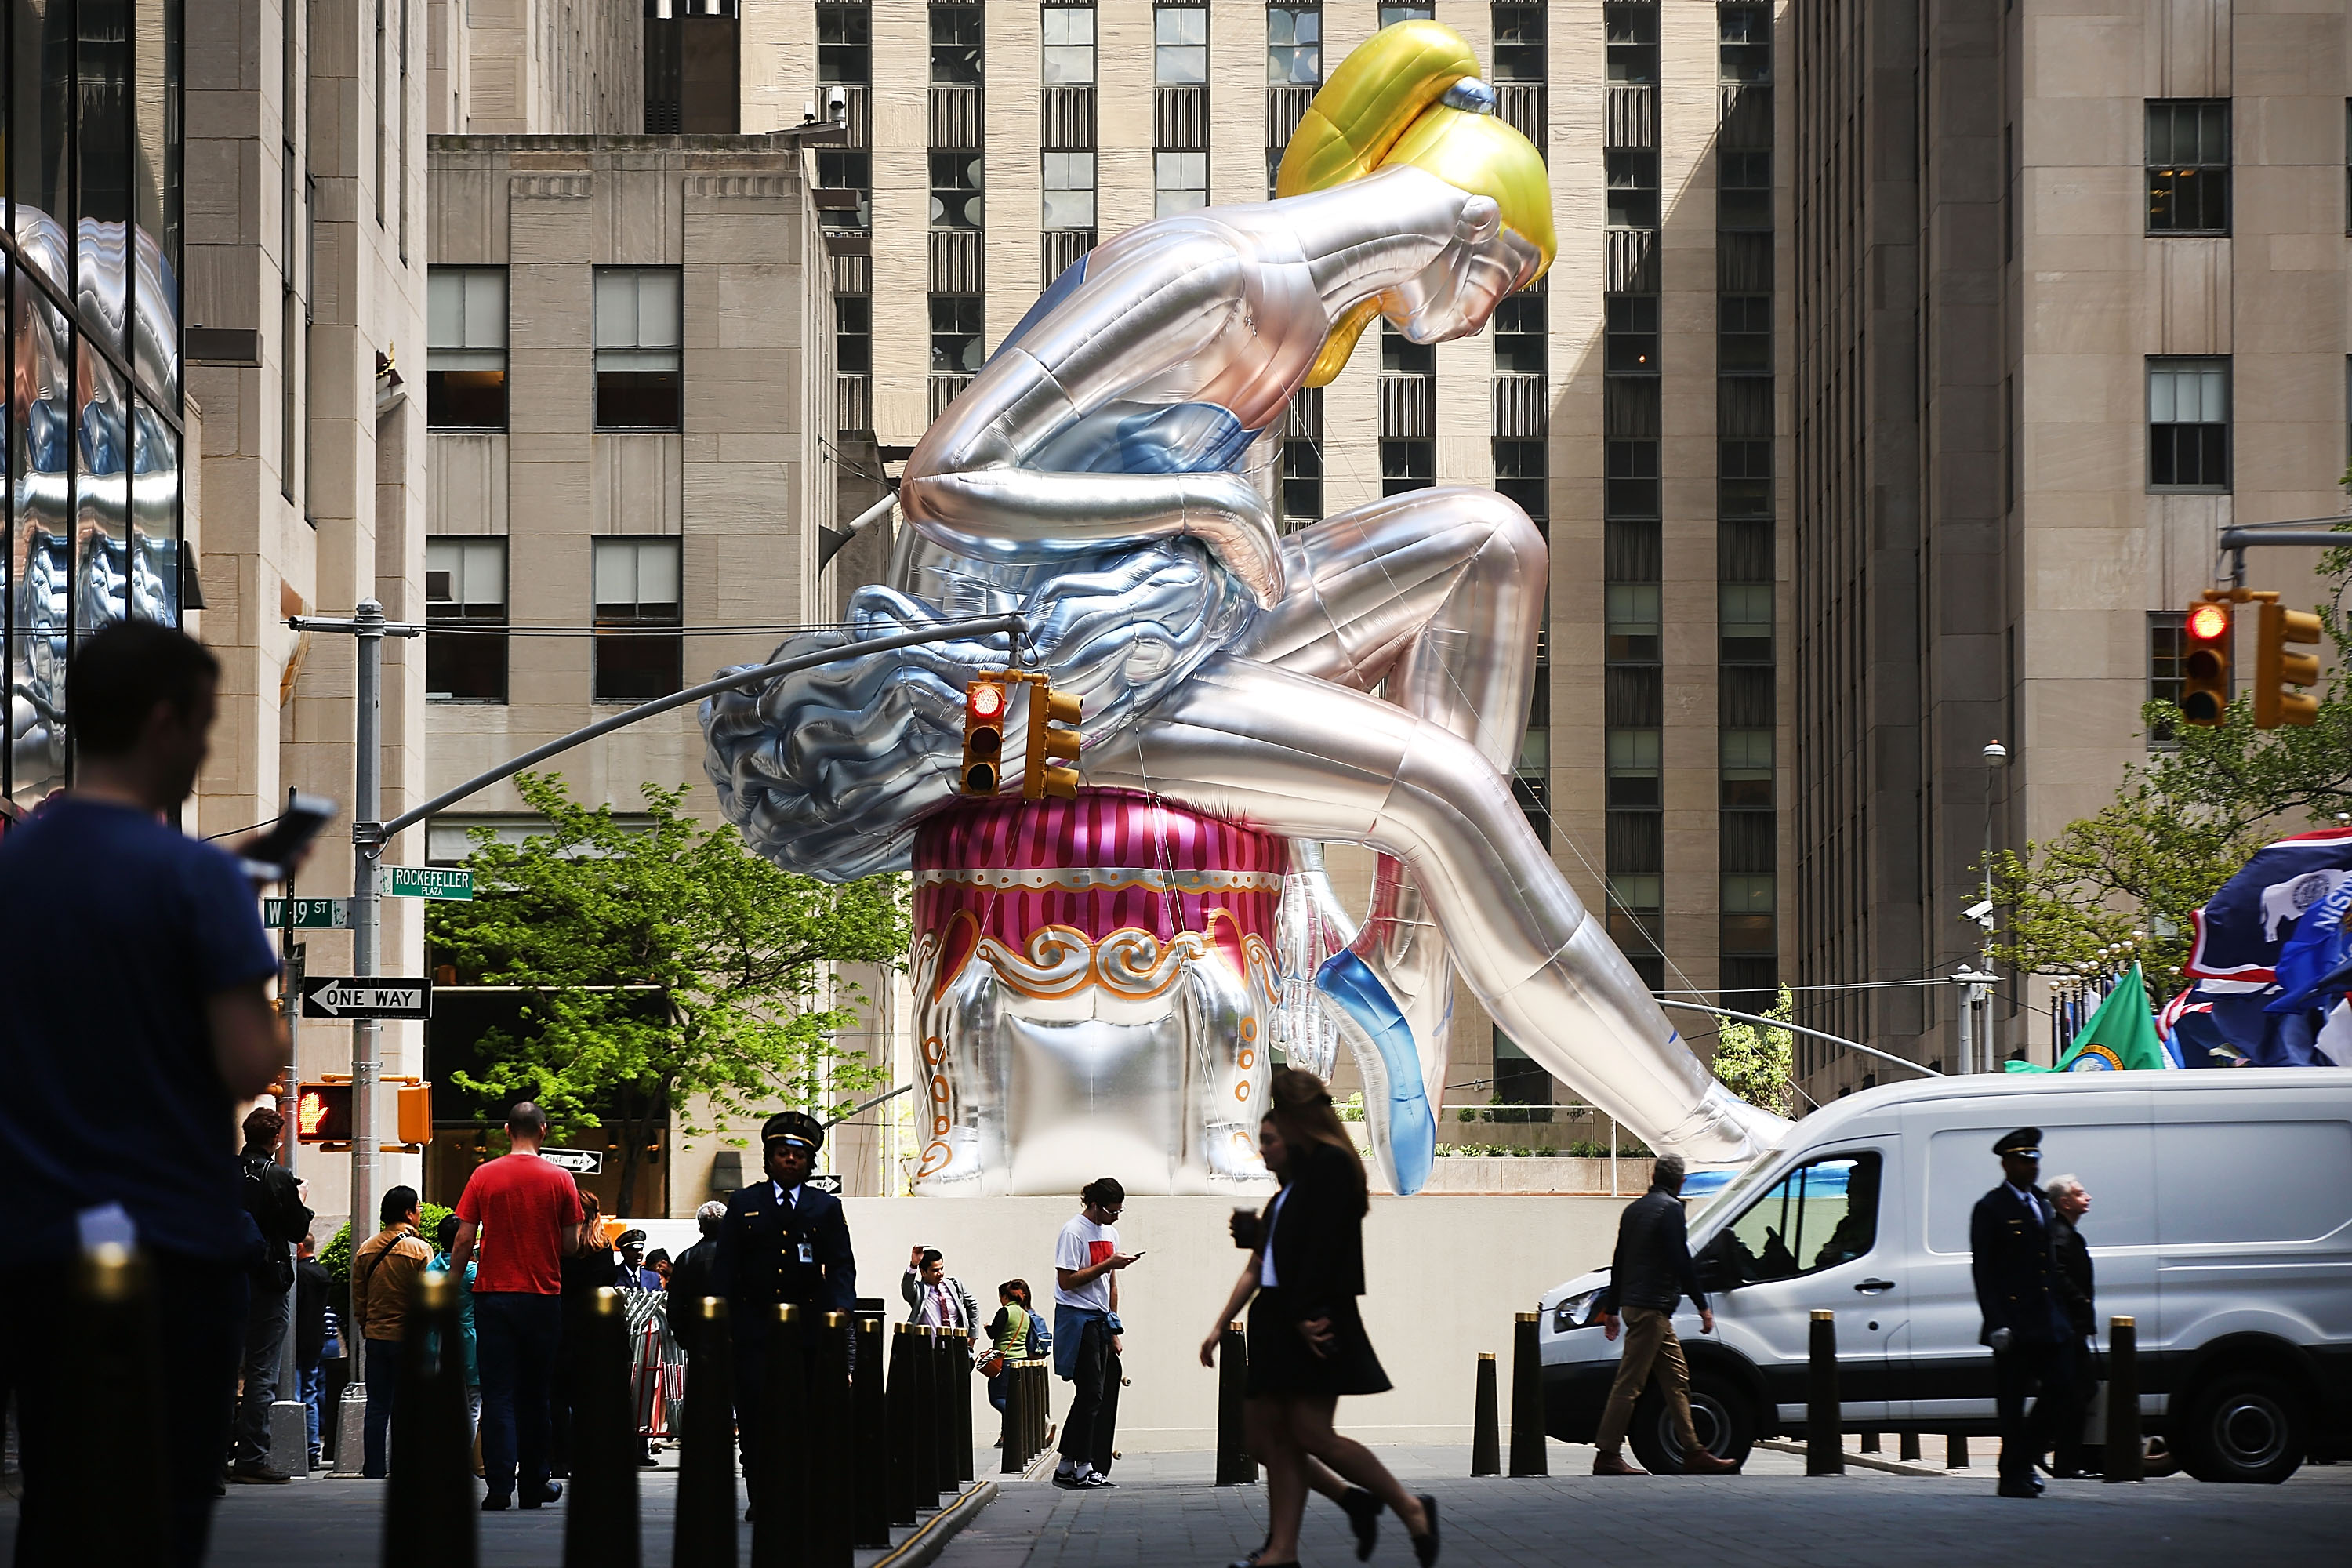 A giant inflatable ballerina is on display in Rockefeller Square in downtown Manhattan, New York City.